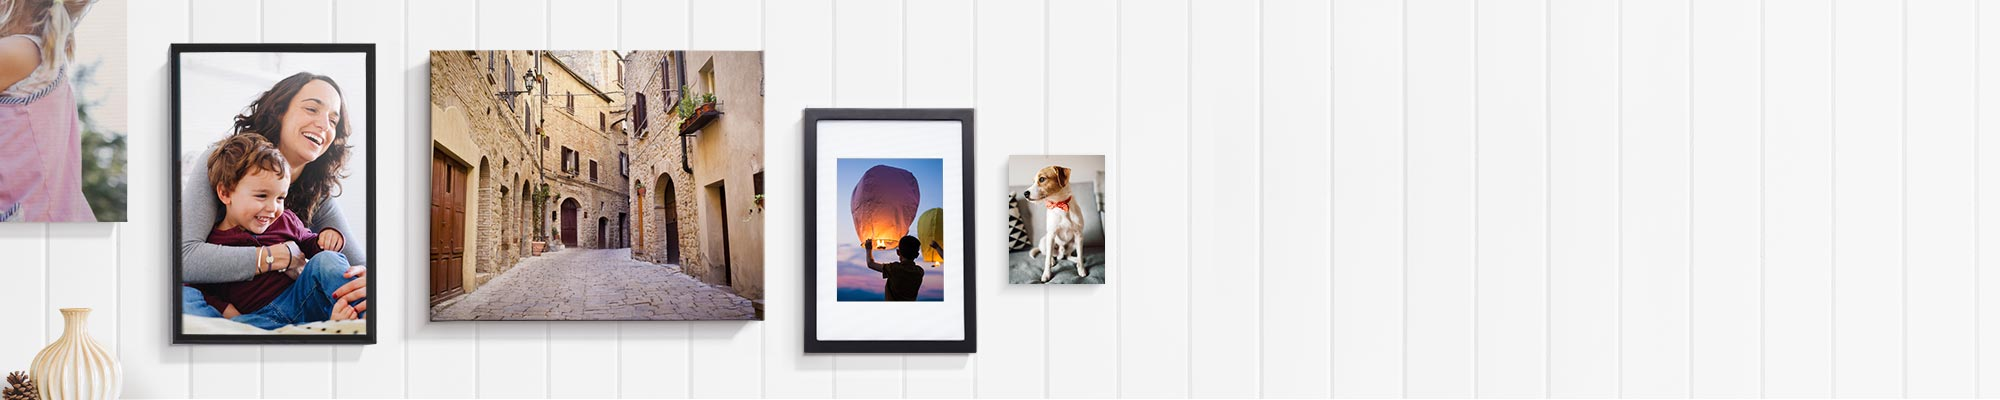 Canvas + Home Decor Instill your most cherished memories in a quality wall hanging or framed print, for all to admire.